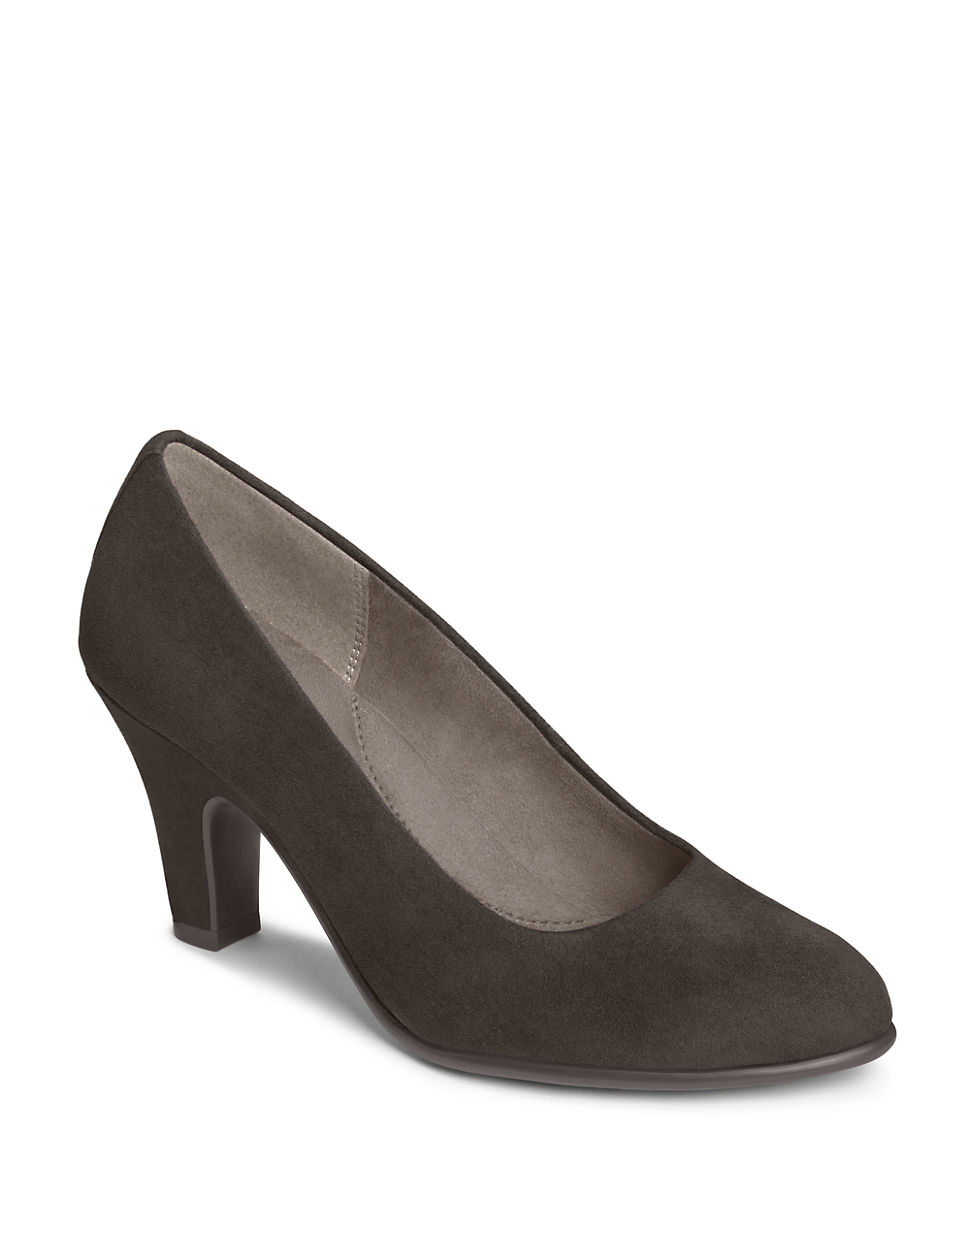 Must-have shoes for women at ZARA online. Find the perfect pair for you and receive it with FREE SHIPPING. CHECKED FABRIC COURT SHOES. CHECKED FABRIC COURT SHOES. STRETCH HIGH-HEEL ANKLE BOOTS. BLACK METALLIC COURT SHOES. VINYL HIGH HEEL SANDALS. Colours. LEATHER PLATFORM HEEL SANDALS. EMBOSSED LEATHER WEDGES. HIGH HEEL .